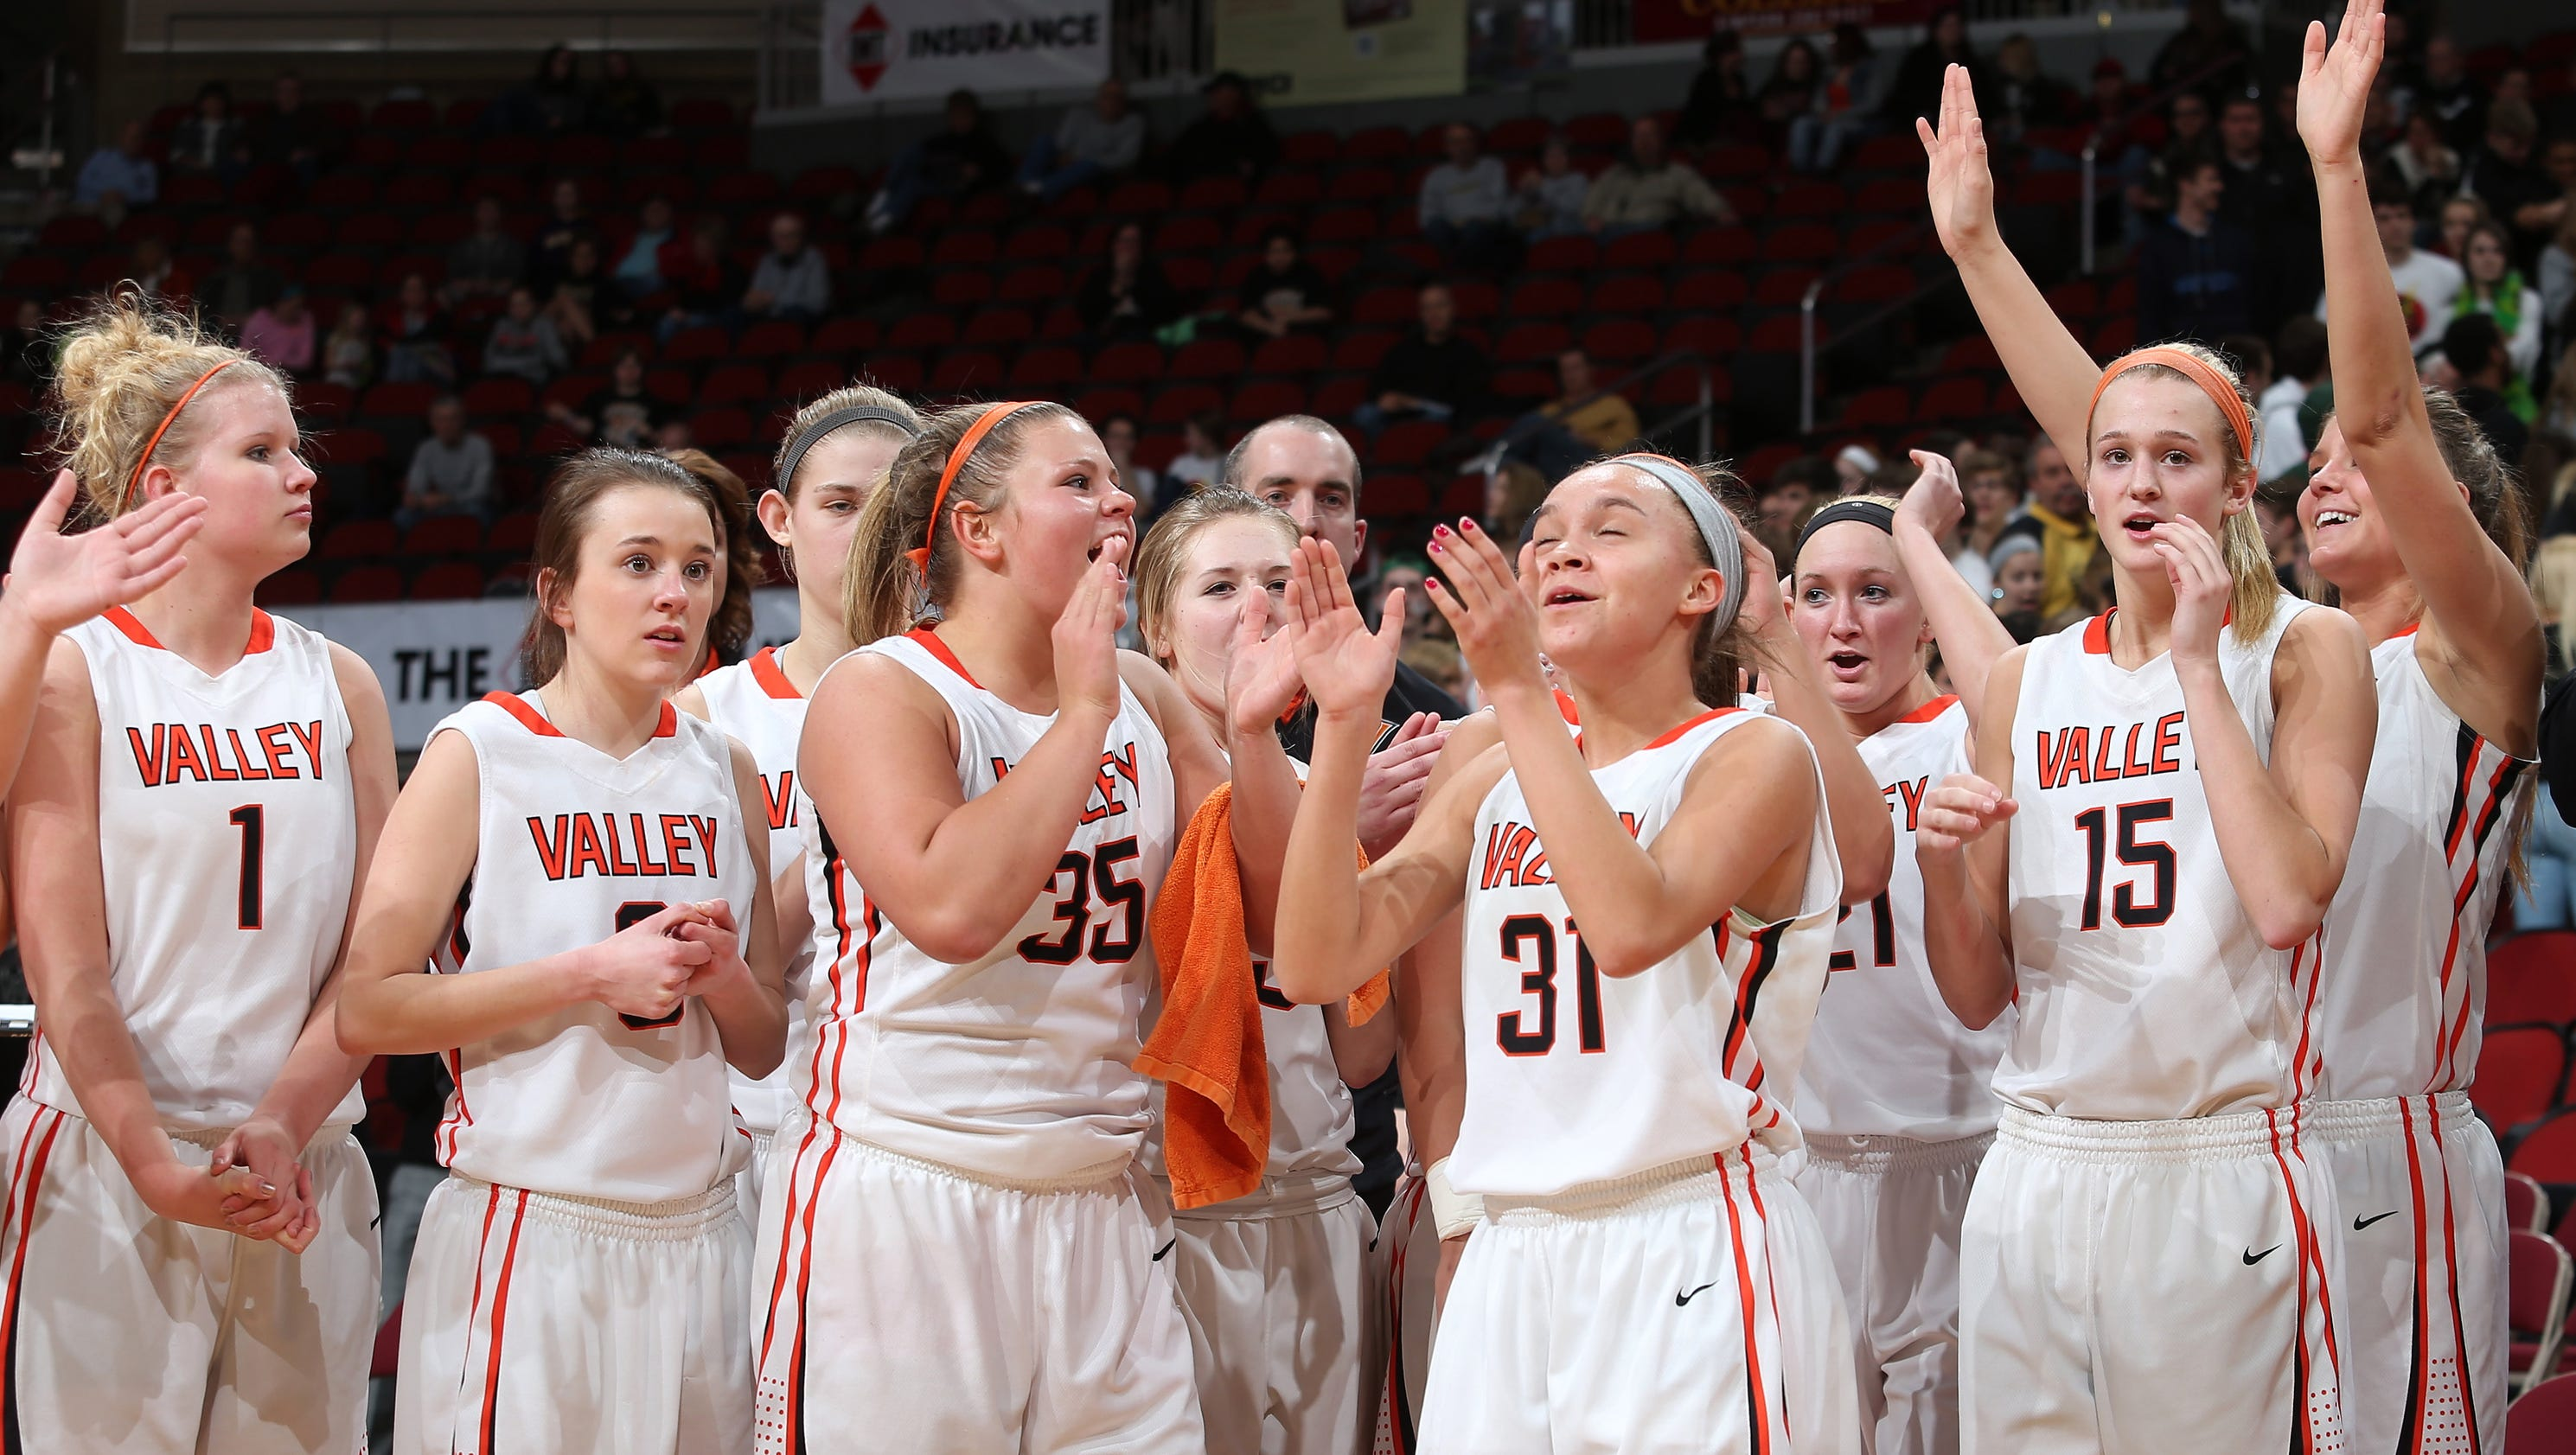 valley city girls Get the latest valley high school girls basketball news, rankings, schedules, stats, scores, results, athletes info, and more at alcom.